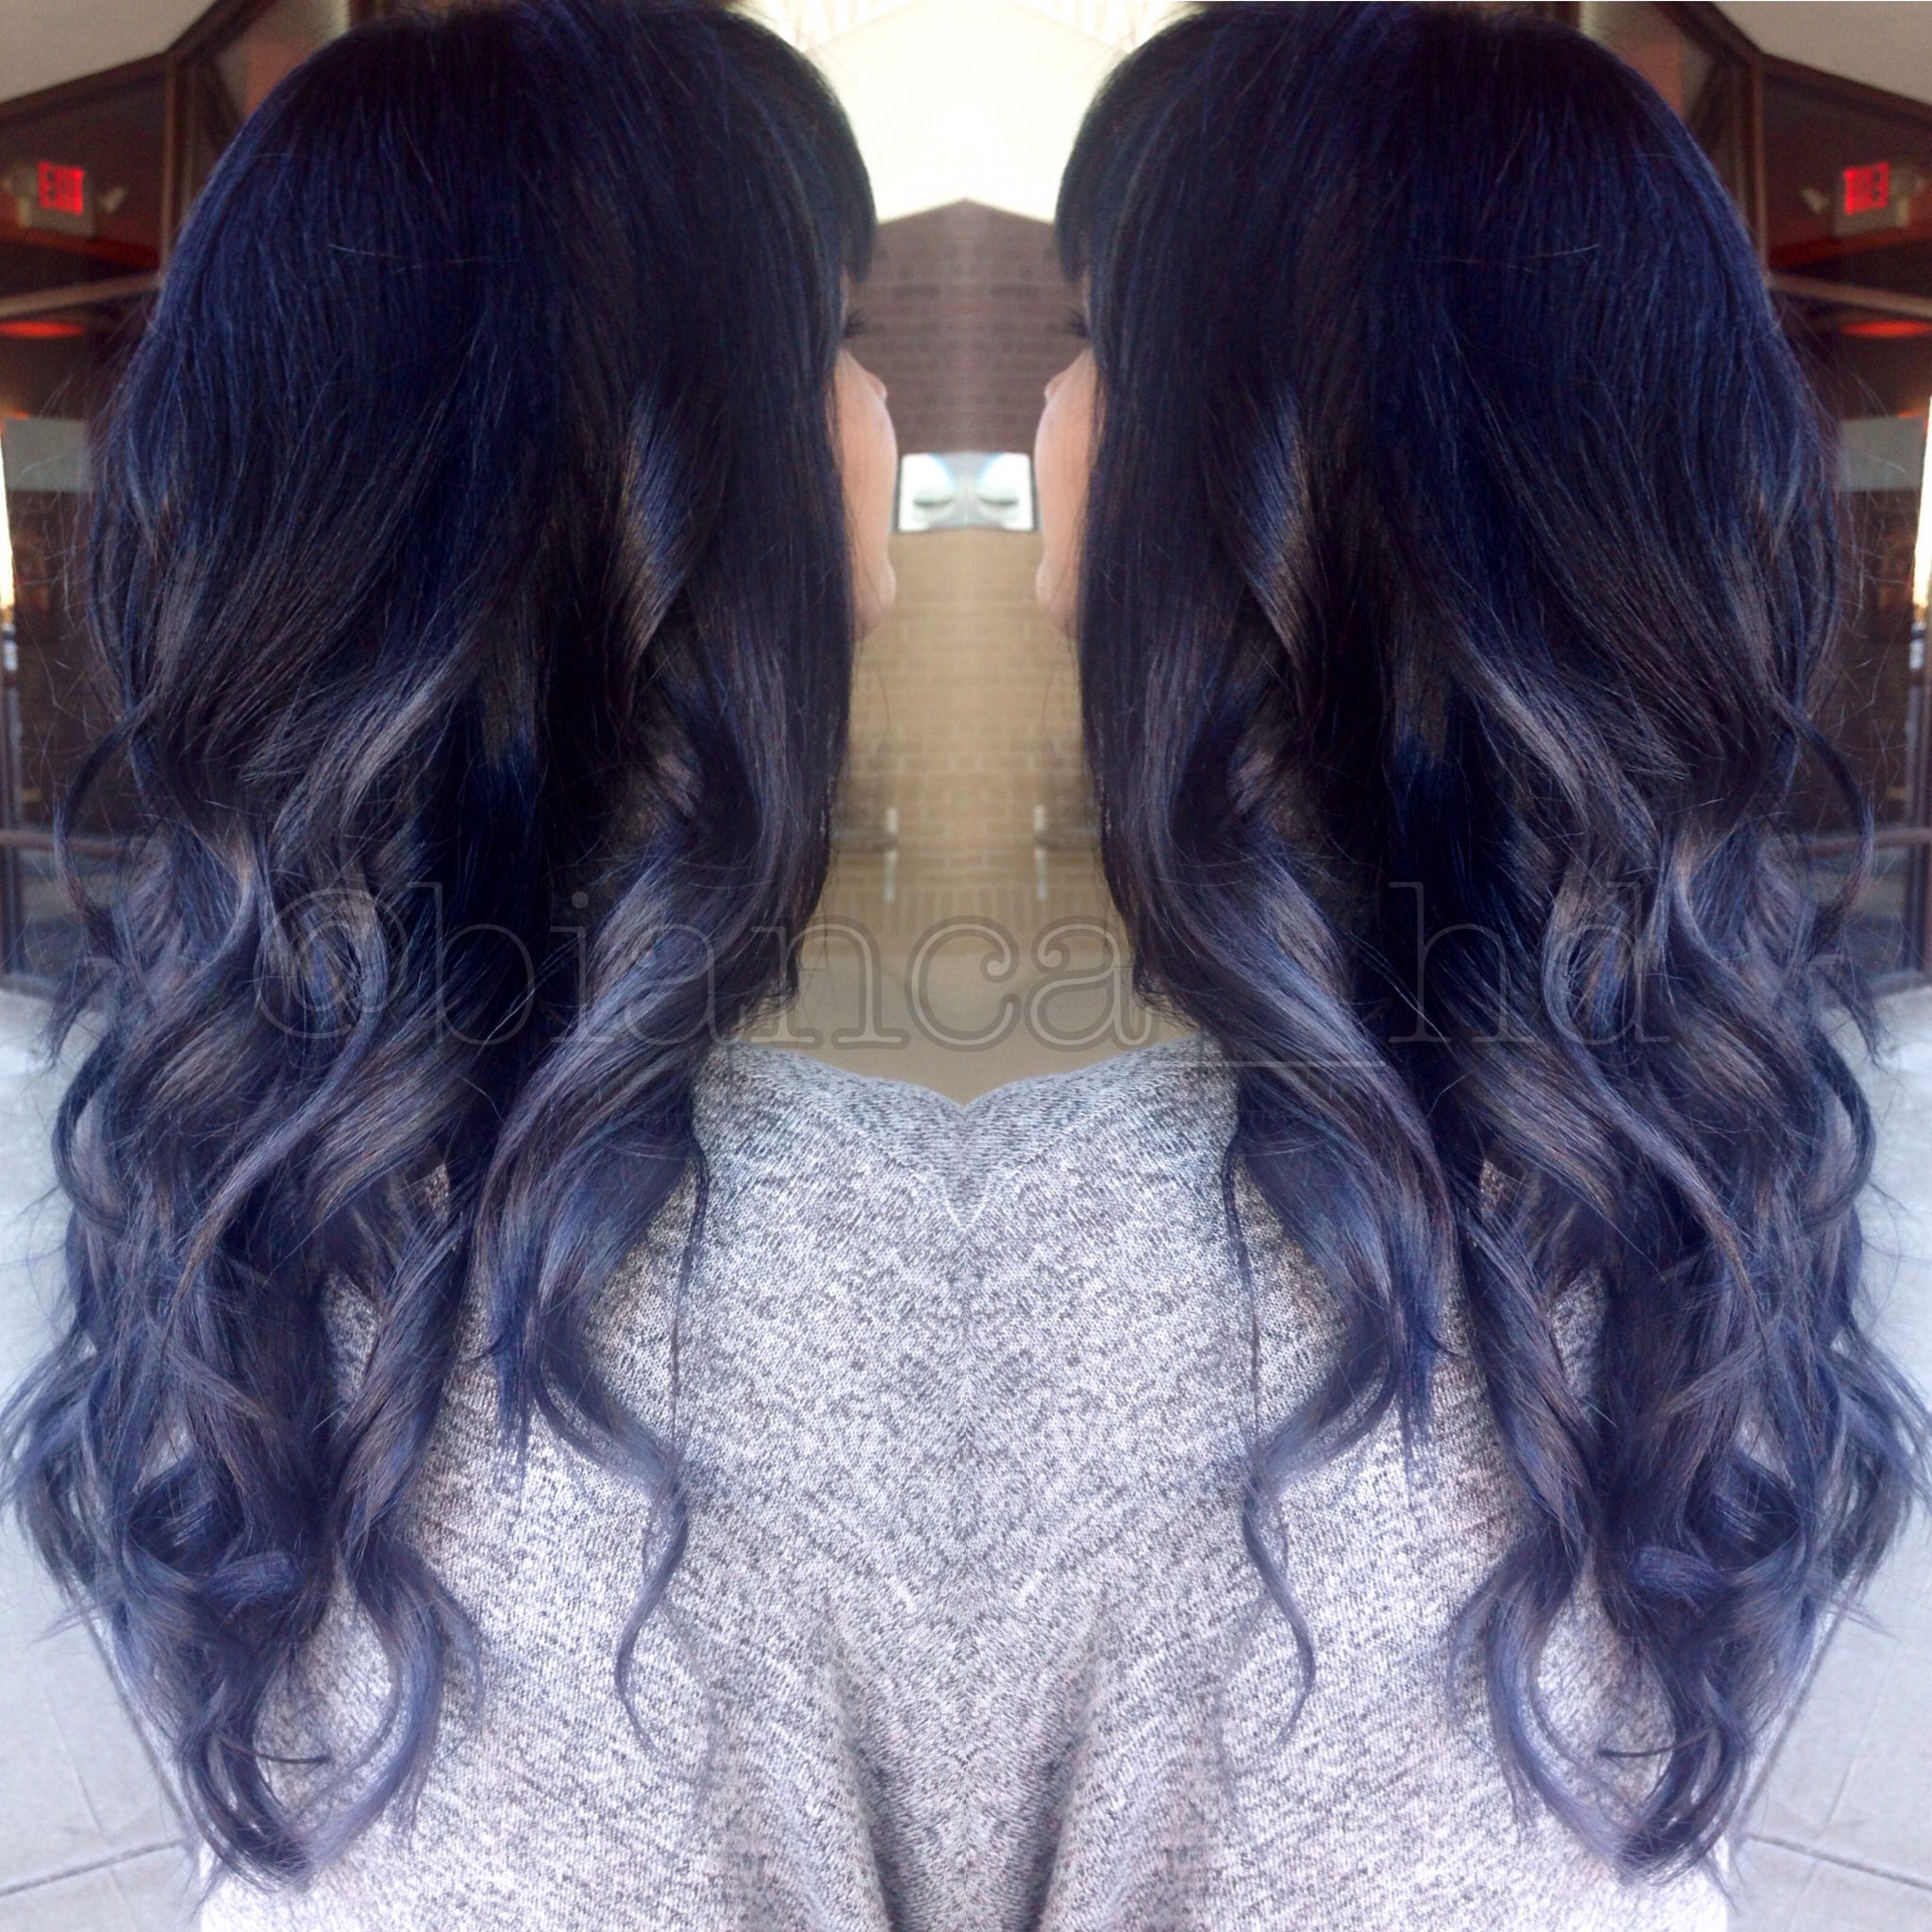 Steel Blue Grey Ombre Balayage With Black Roots And Soft Curls Spring Hair Color Hair Ombre Hair Color